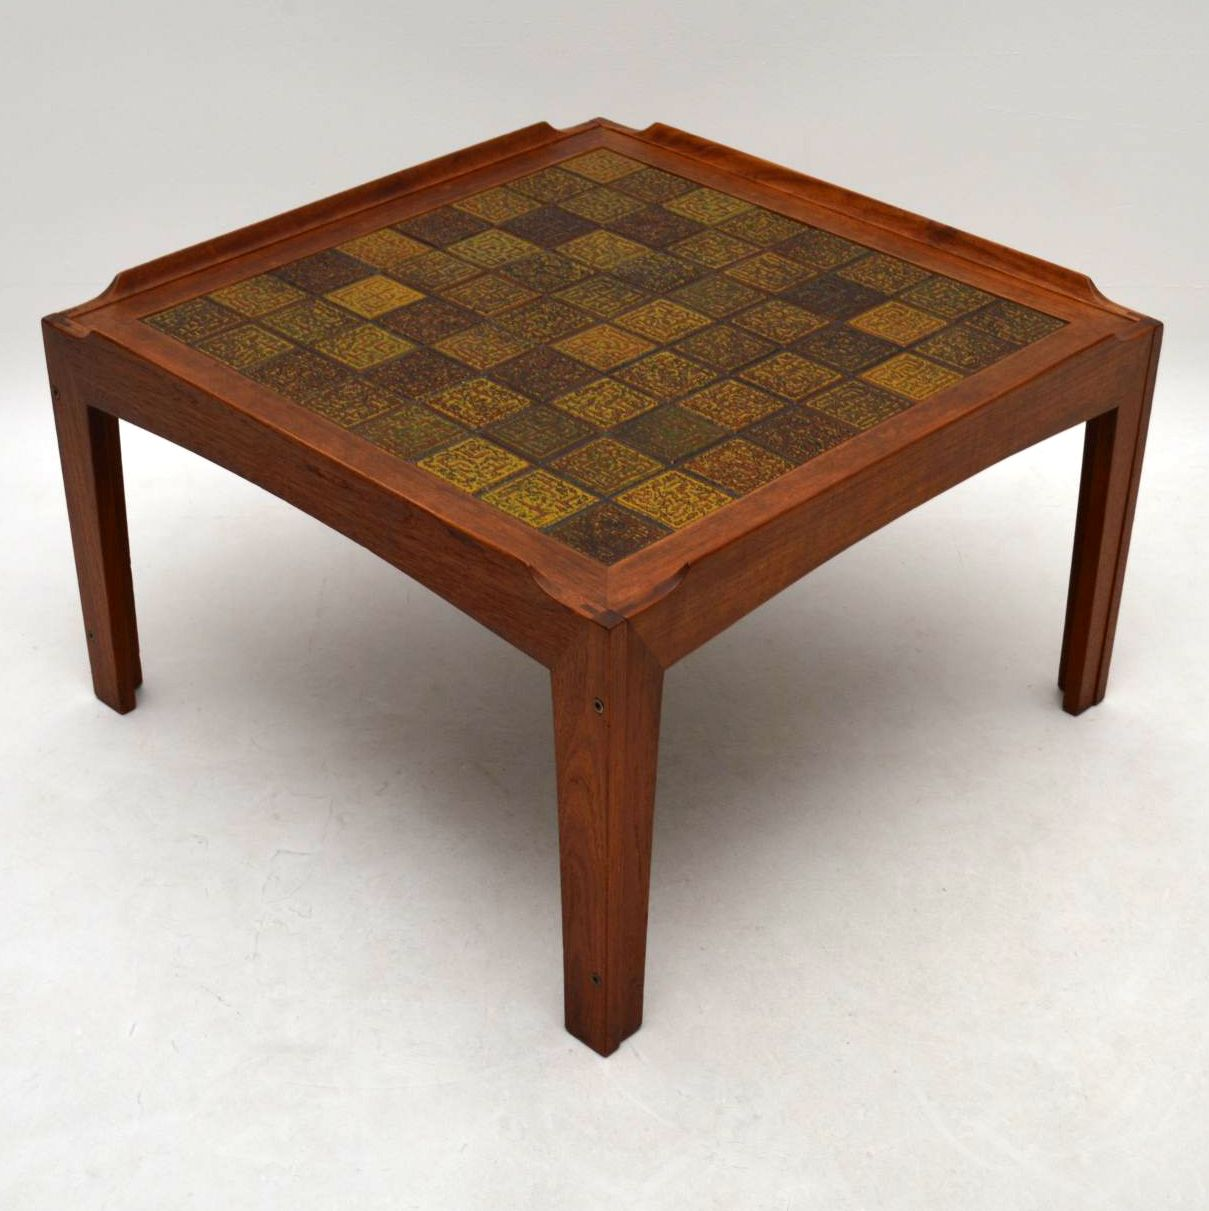 Danish Teak Tiled Top Retro Coffee Table Vintage 1960 S